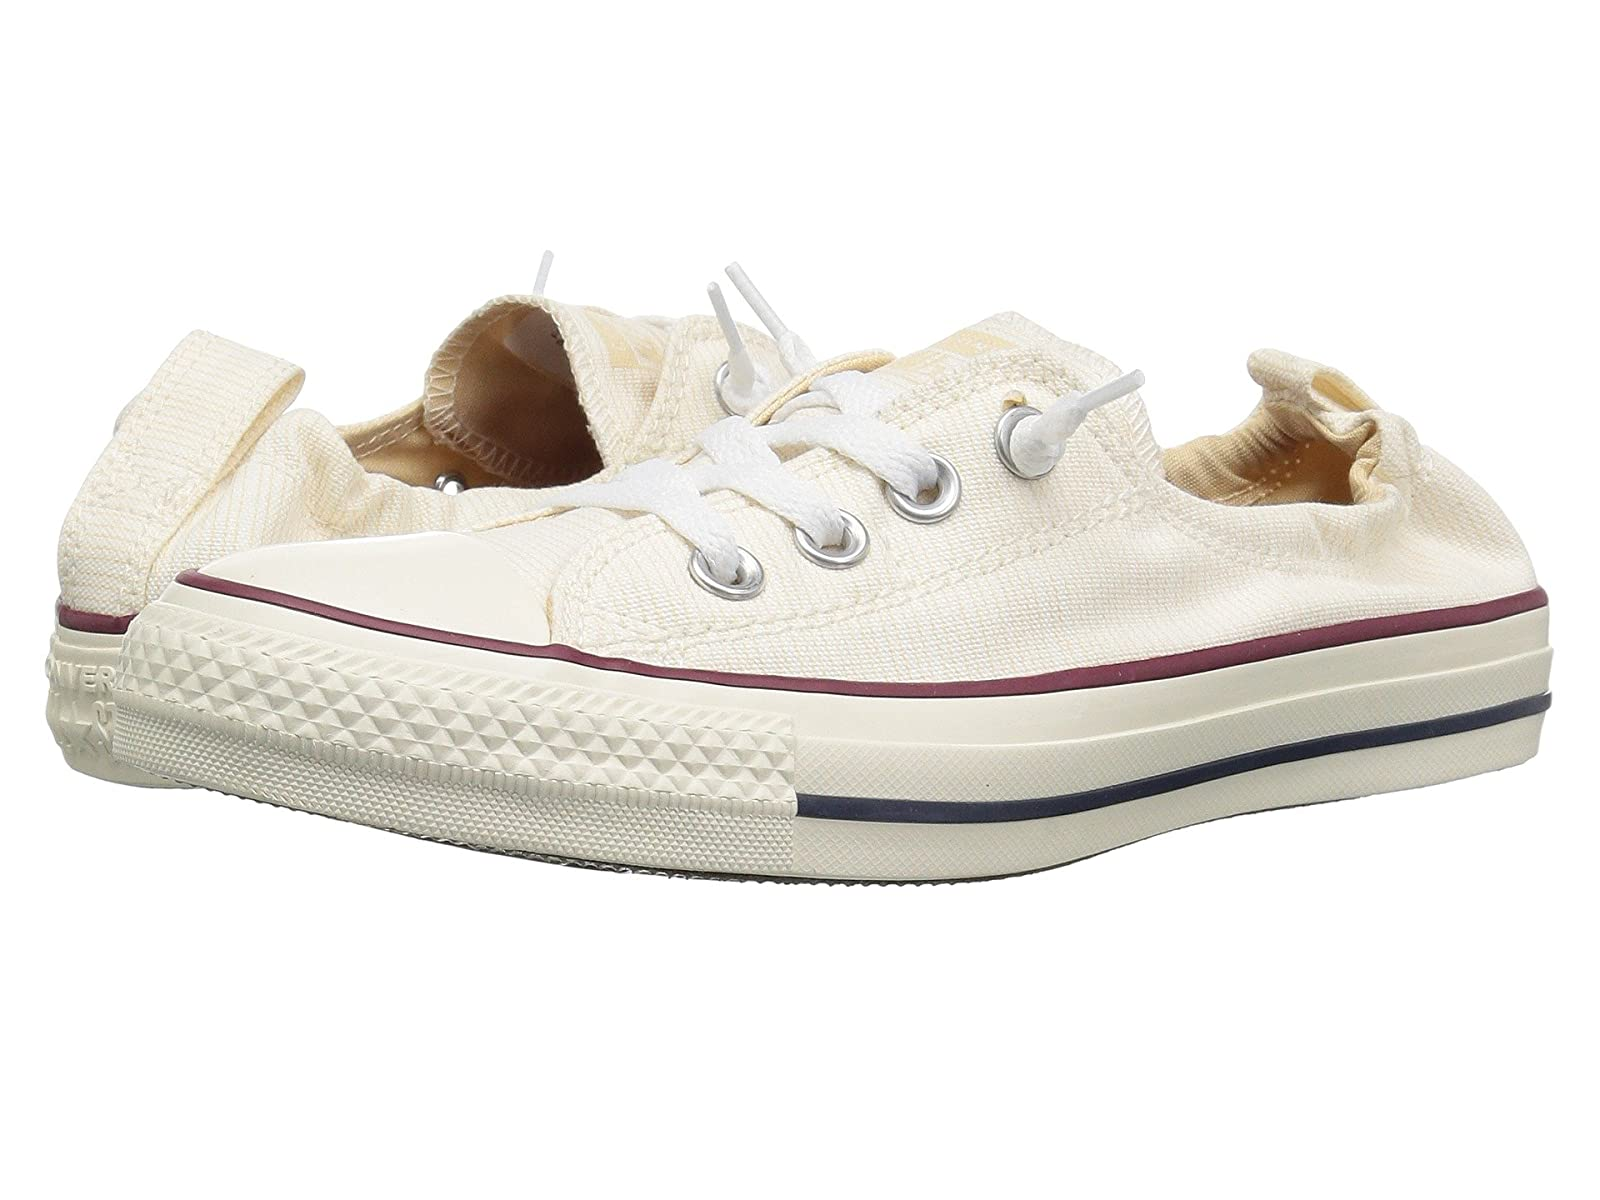 Converse Chuck Taylor All Star Shoreline - Prep Style SlipAtmospheric grades have affordable shoes